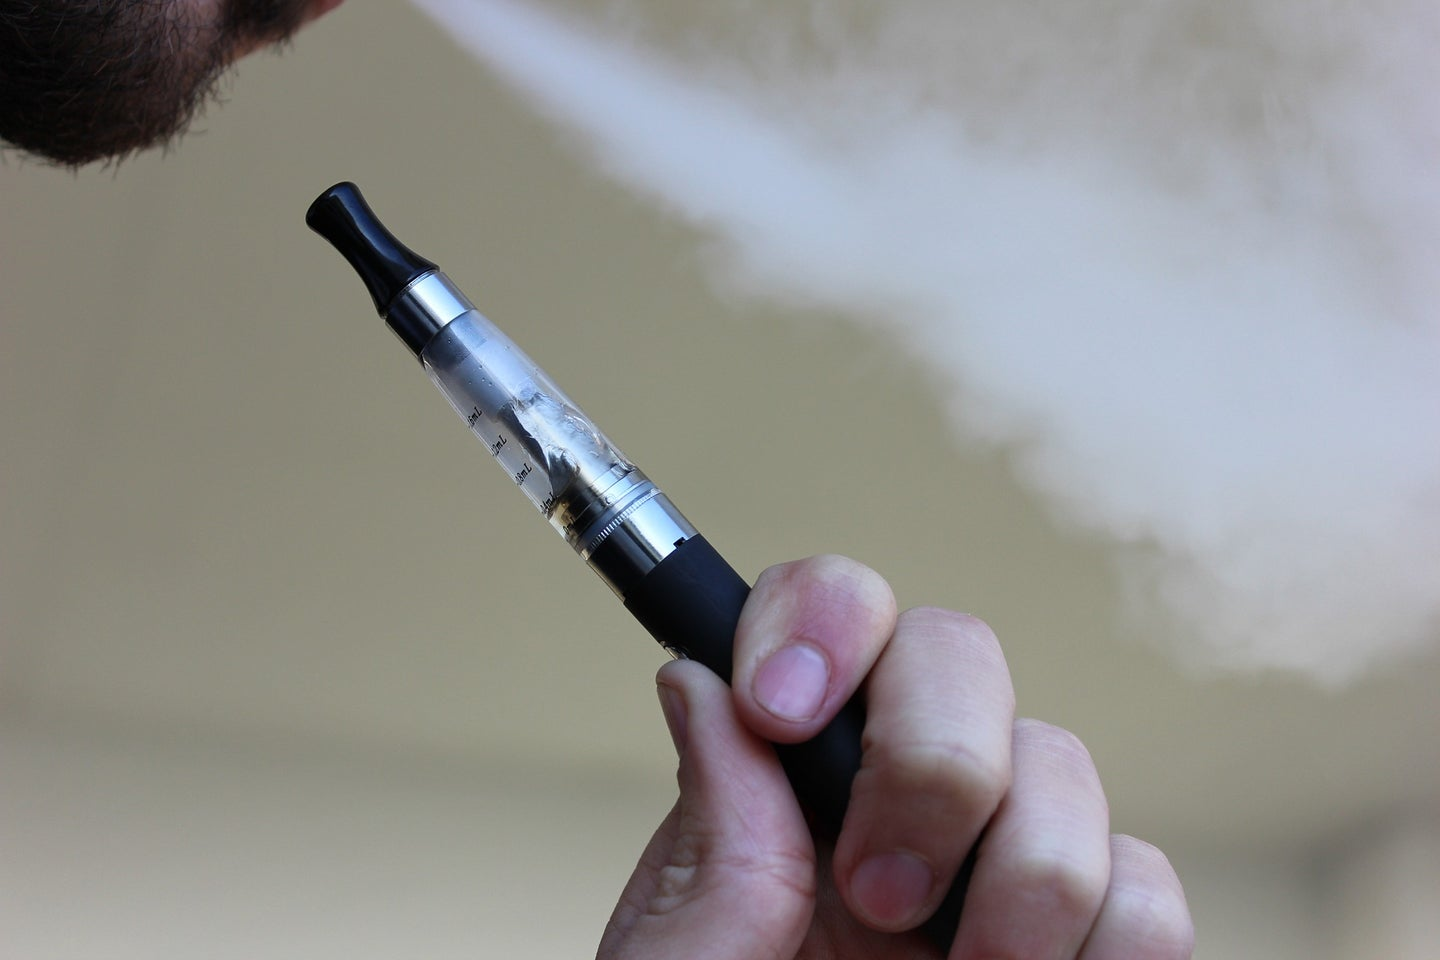 With three dead and hundreds sick, the CDC just issued a warning against all vaping